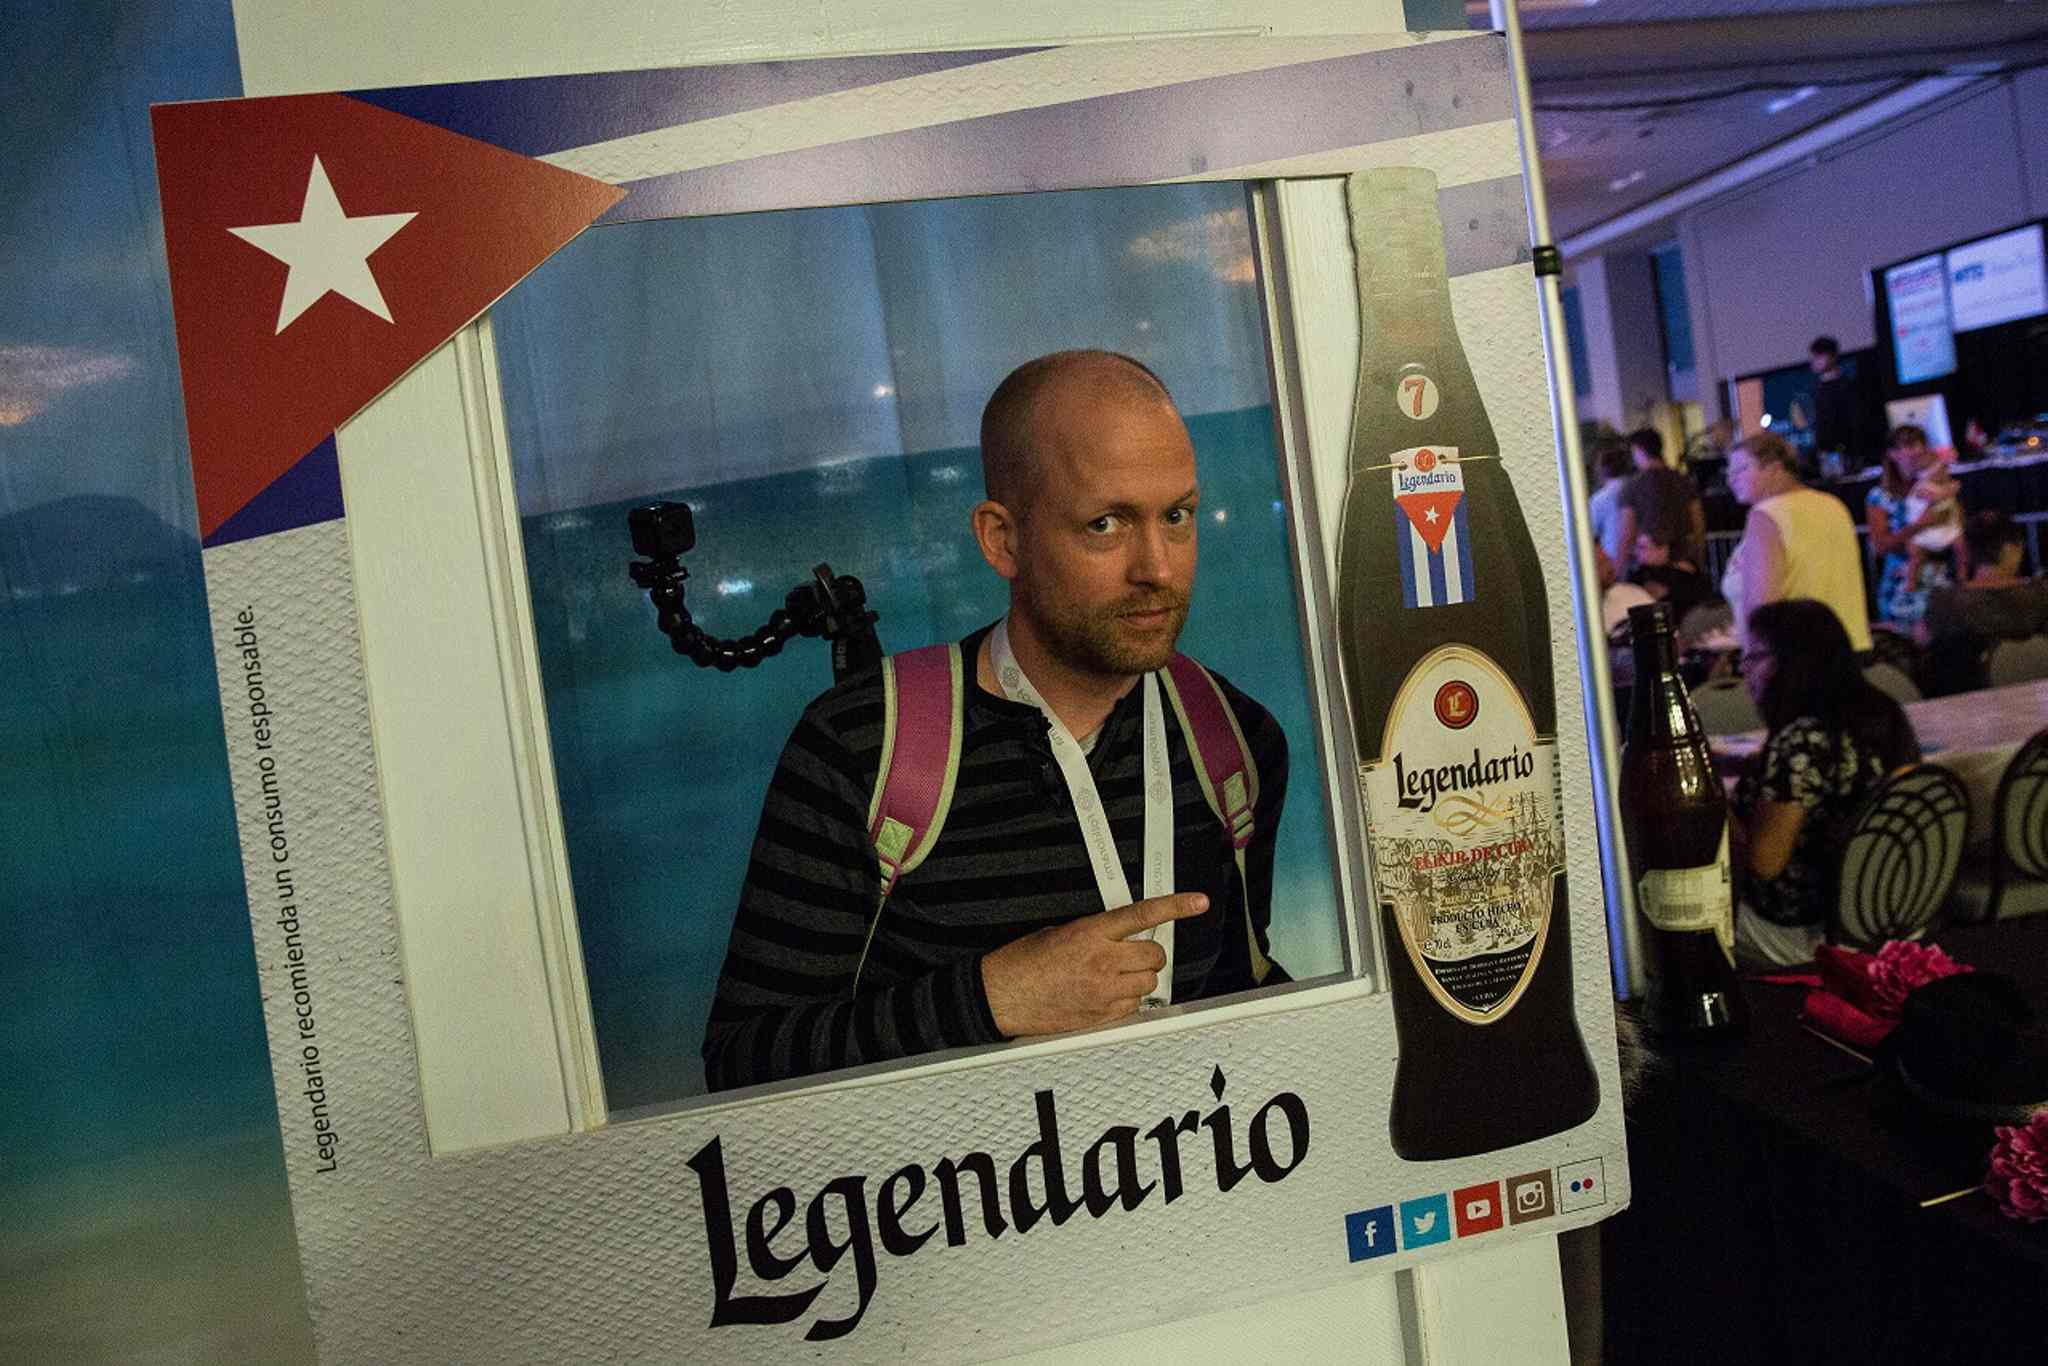 MIKE DEAL / WINNIPEG FREE PRESS </p><P>Ben MacPhee-Sigurdson in the Legendario photo booth at the Cuba pavilion.